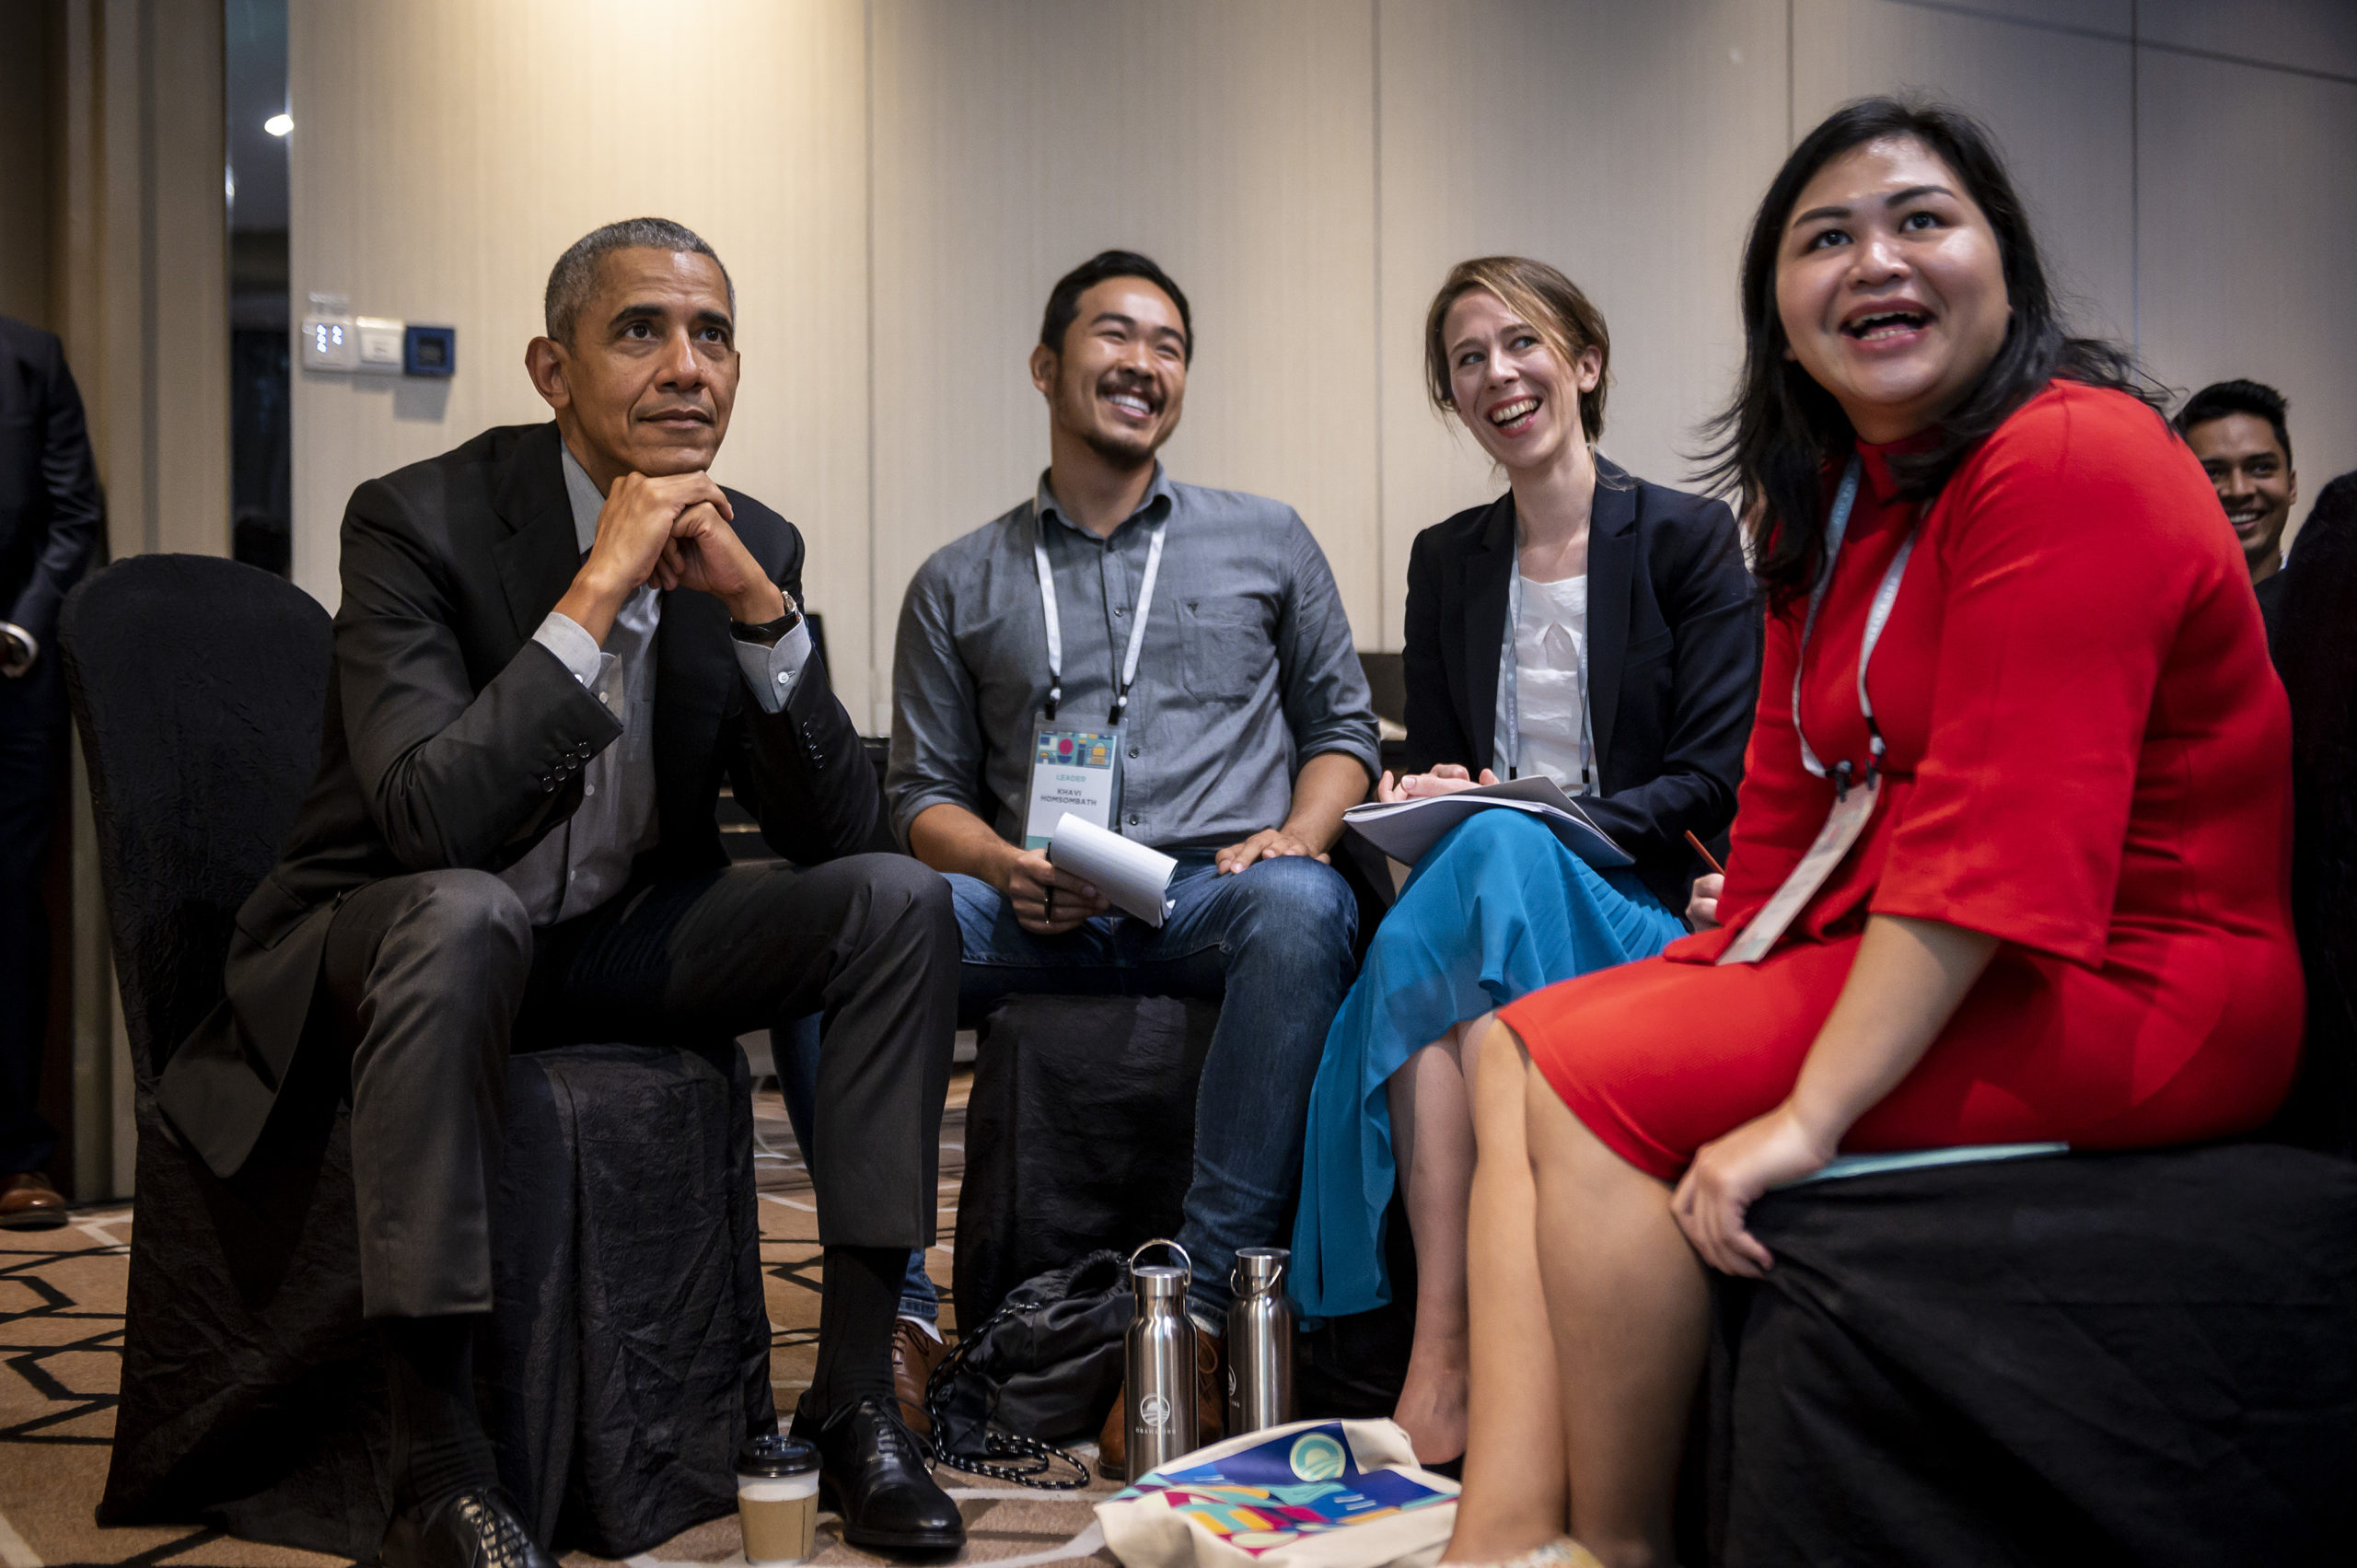 President Obama sits with young leaders.